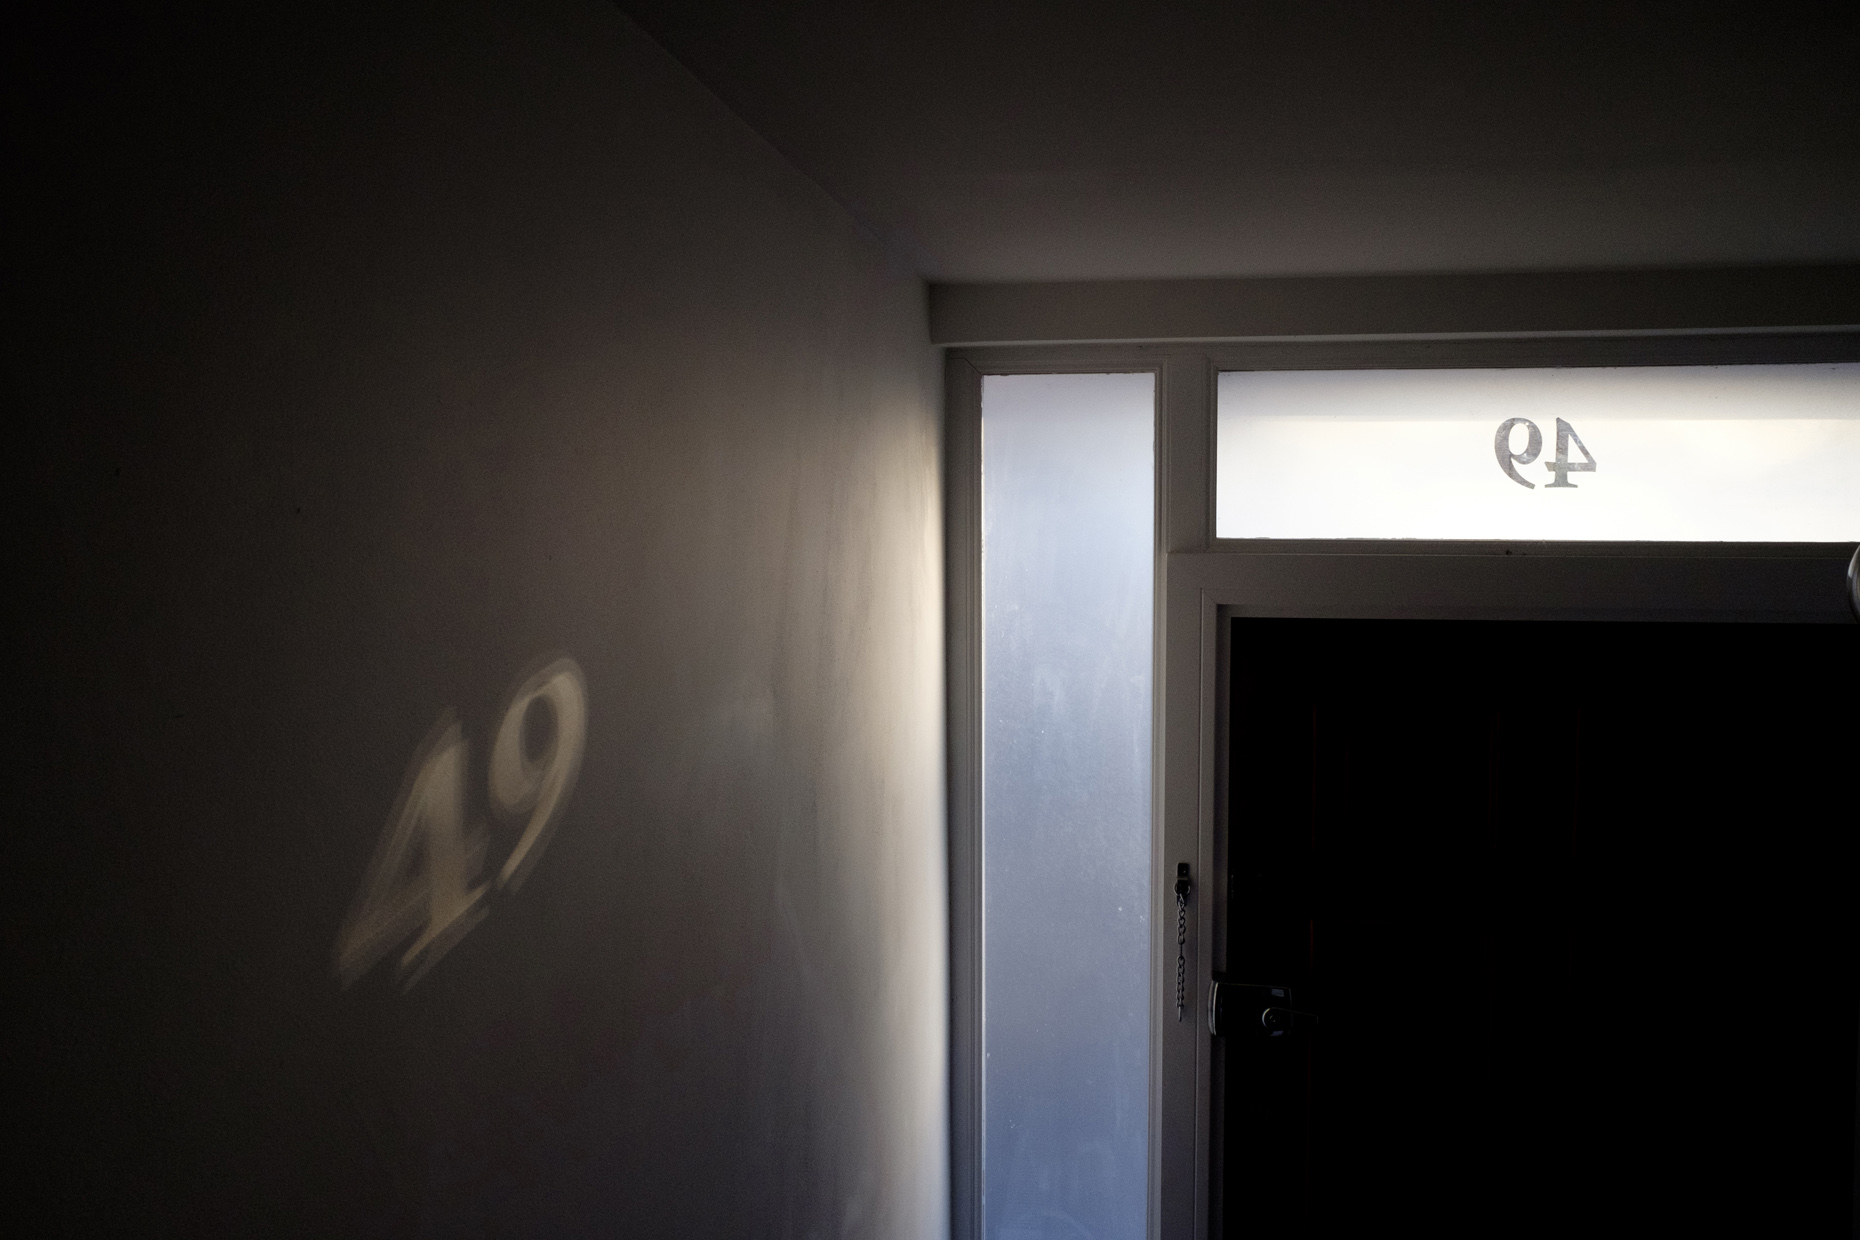 An image from the project 'Grey Areas', a photography project by Jaspal Channa featured on blume